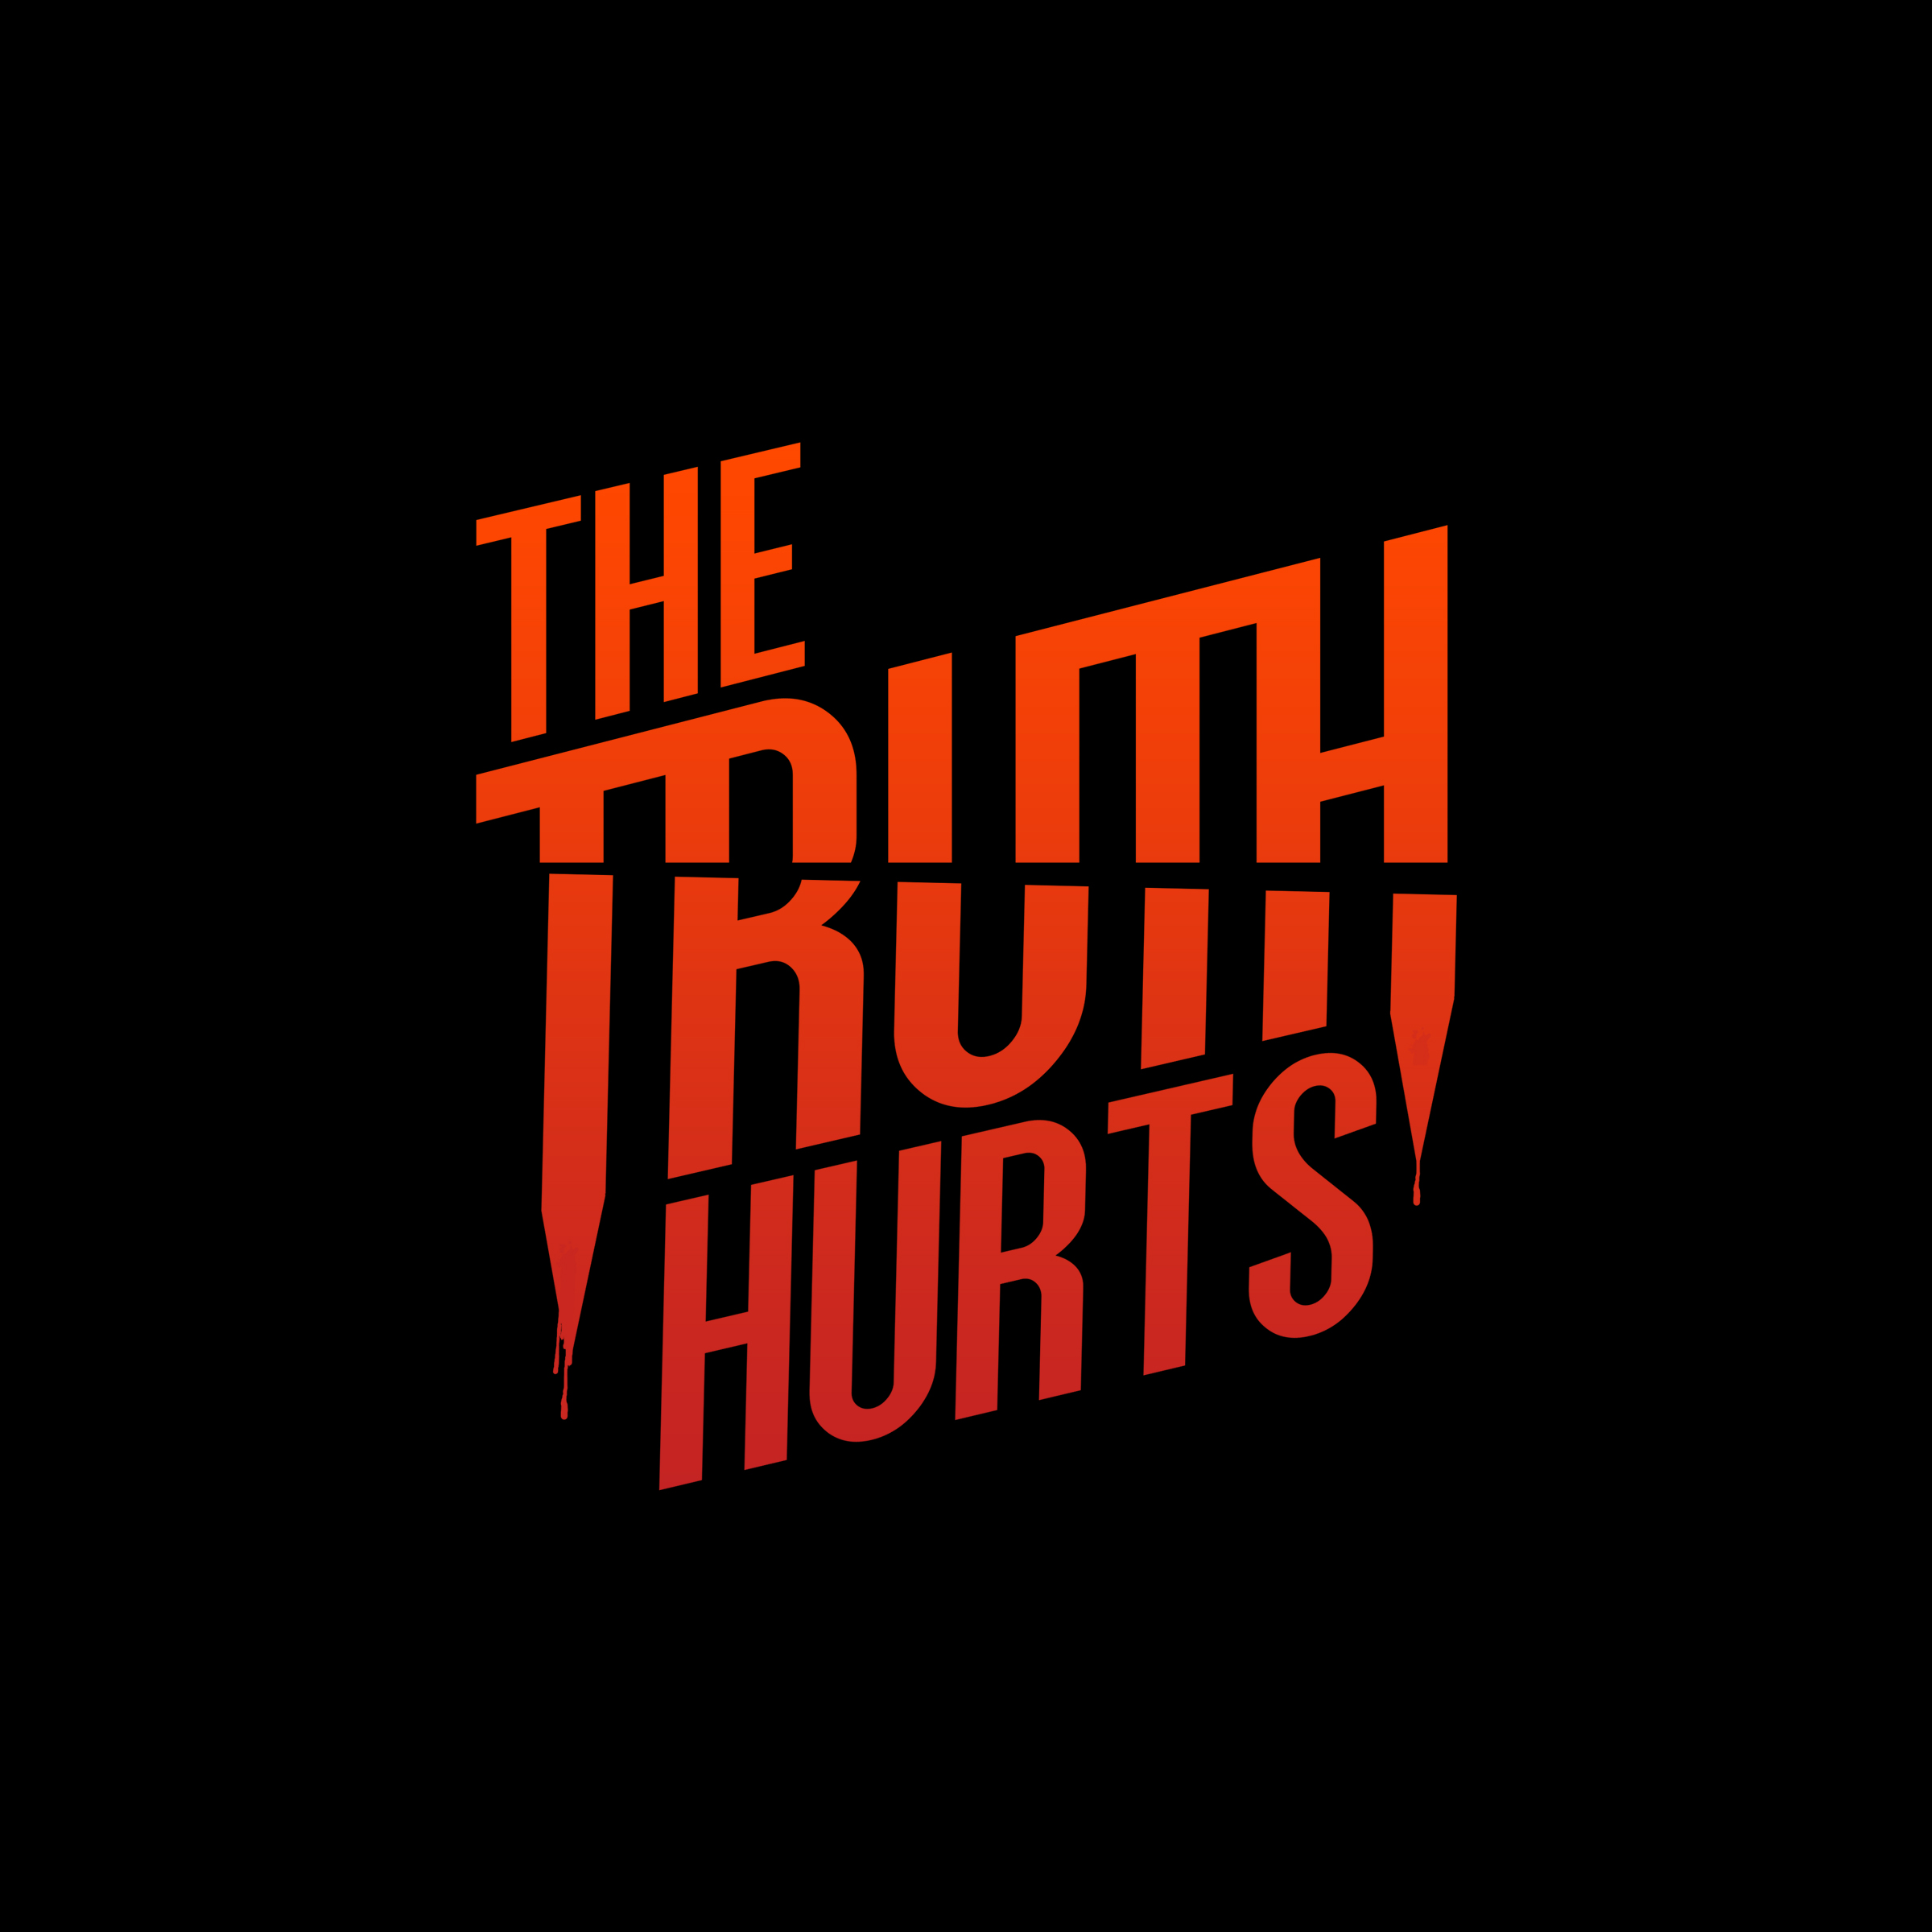 THE TRUTH HURTS (PROJECT LEAD)